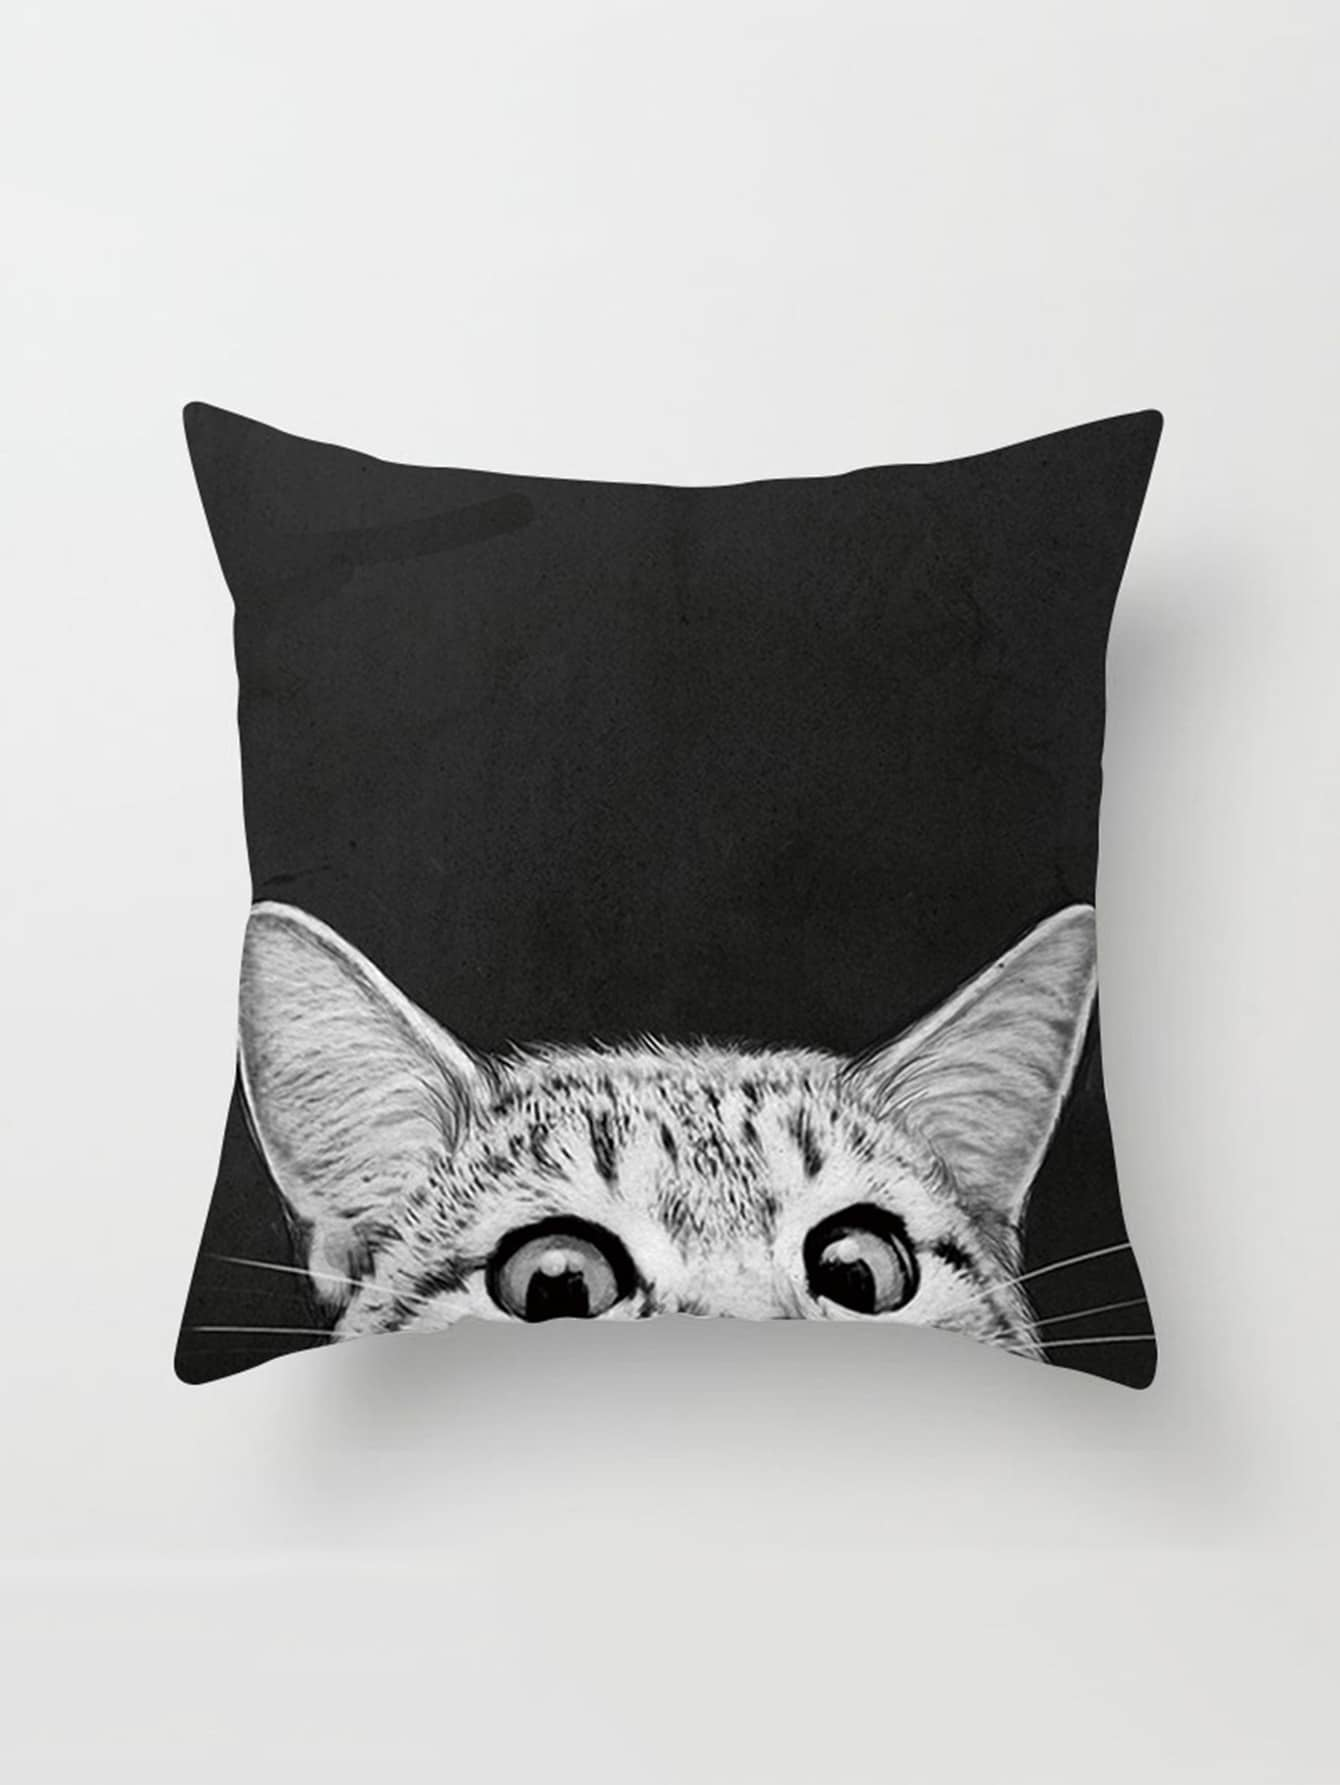 Image of Cat Print Linen Pillowcase Cover